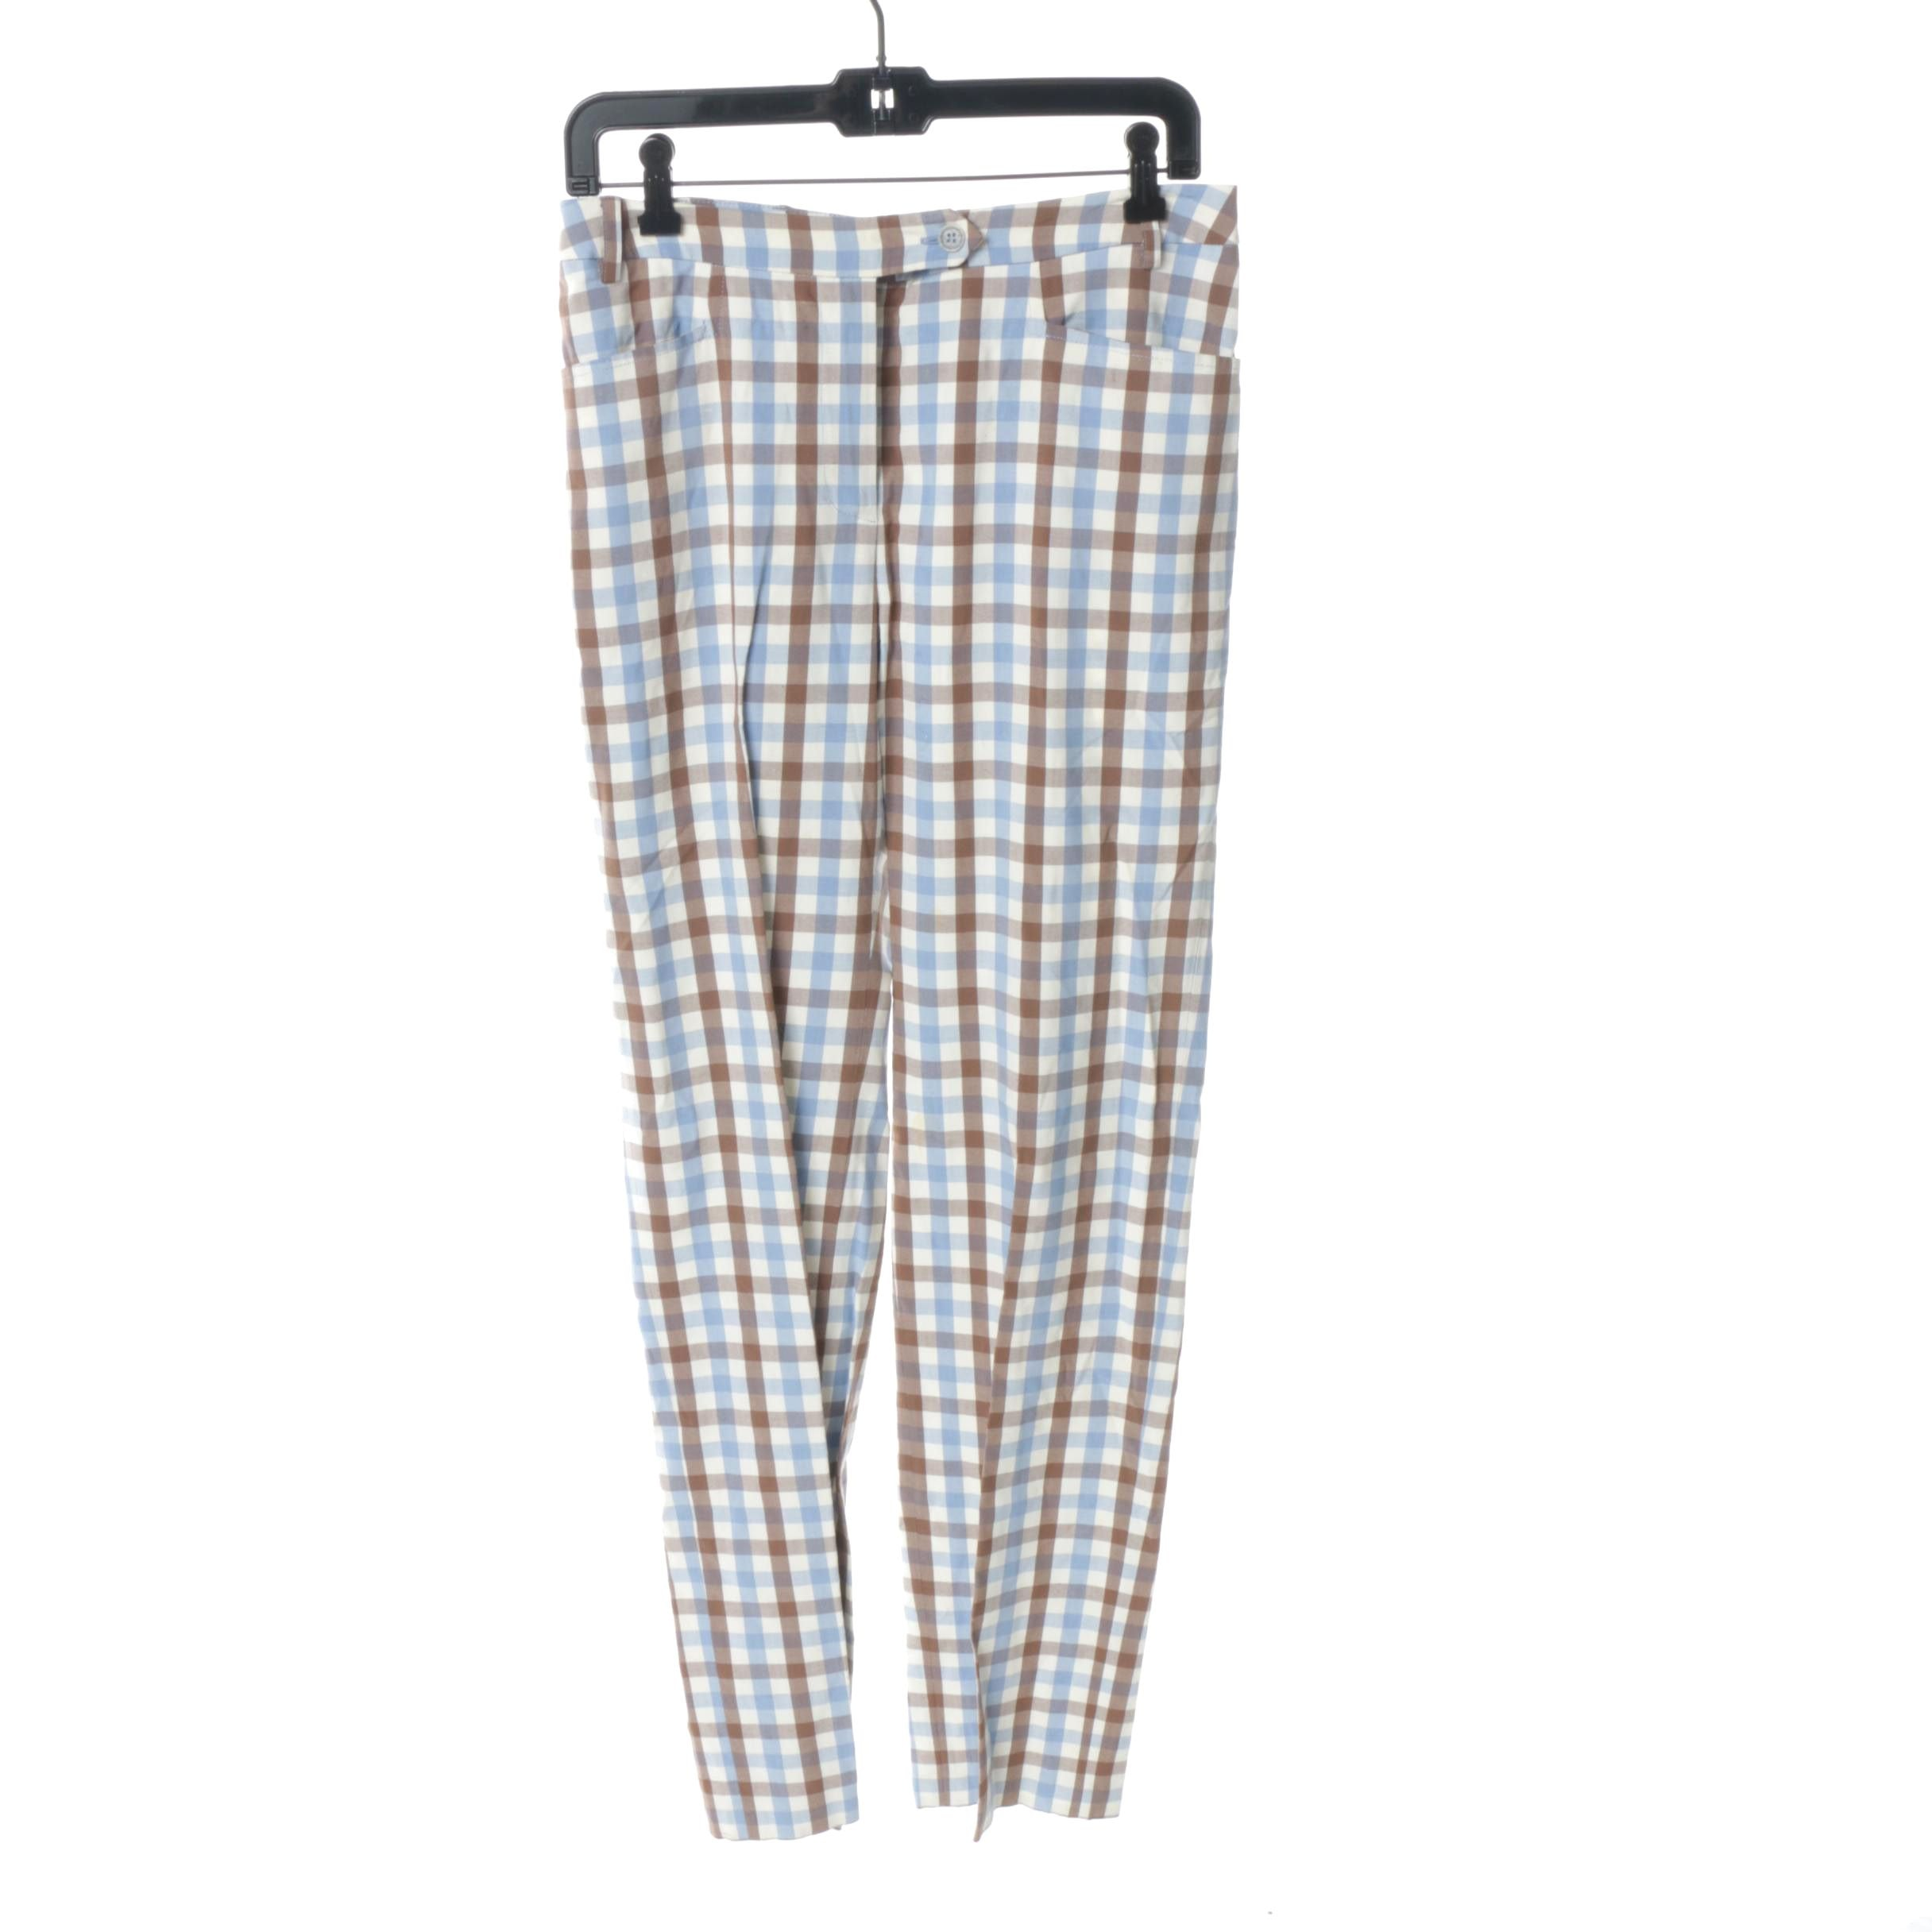 Women's Cheap and Chic by Moschino Plaid Cotton Trousers